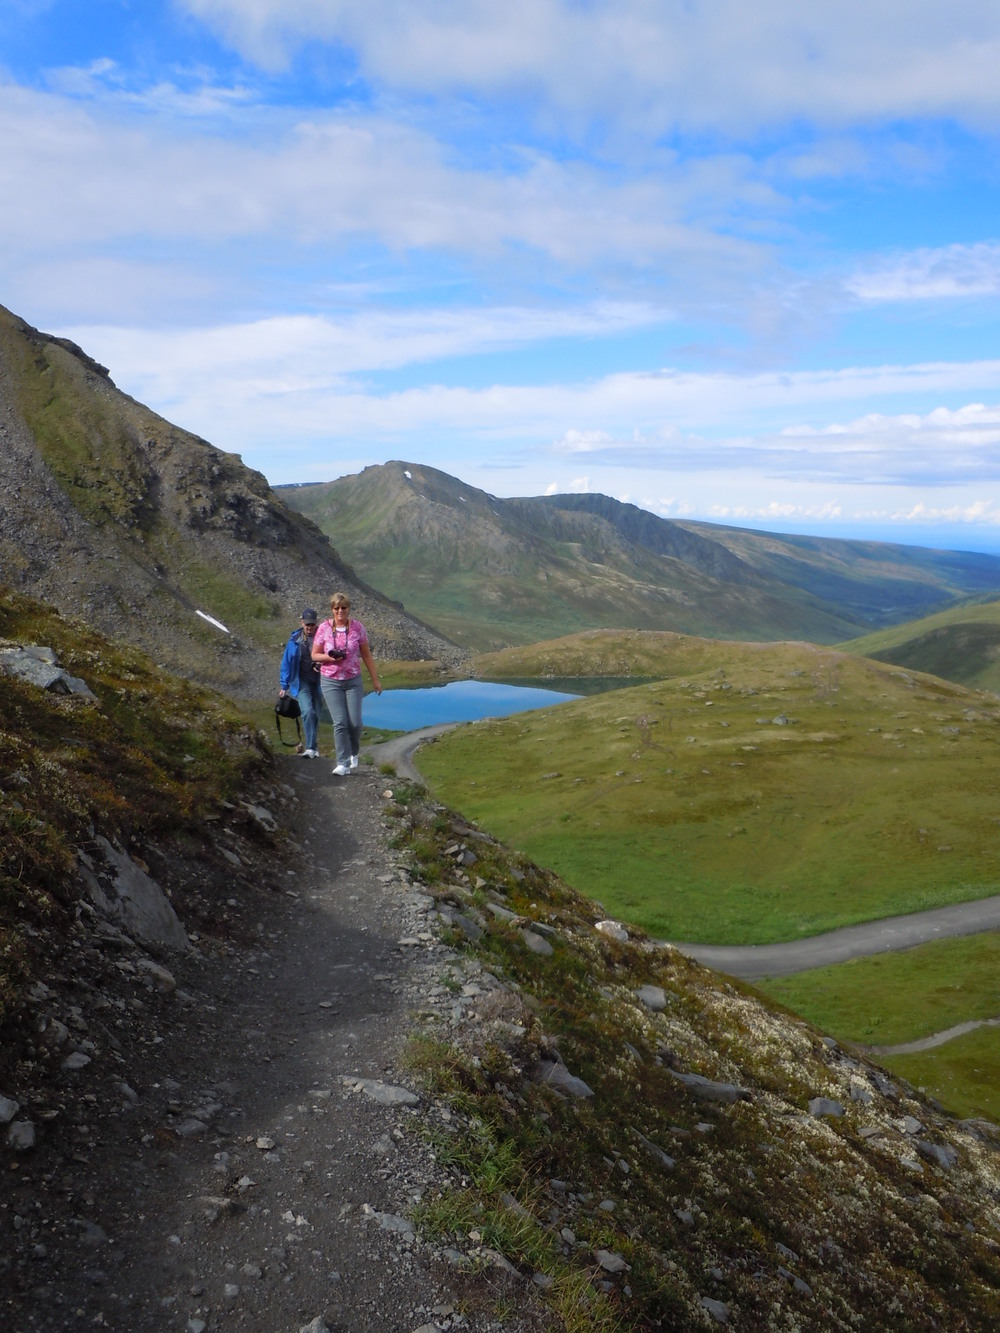 Hatcher Pass hiking adventures.